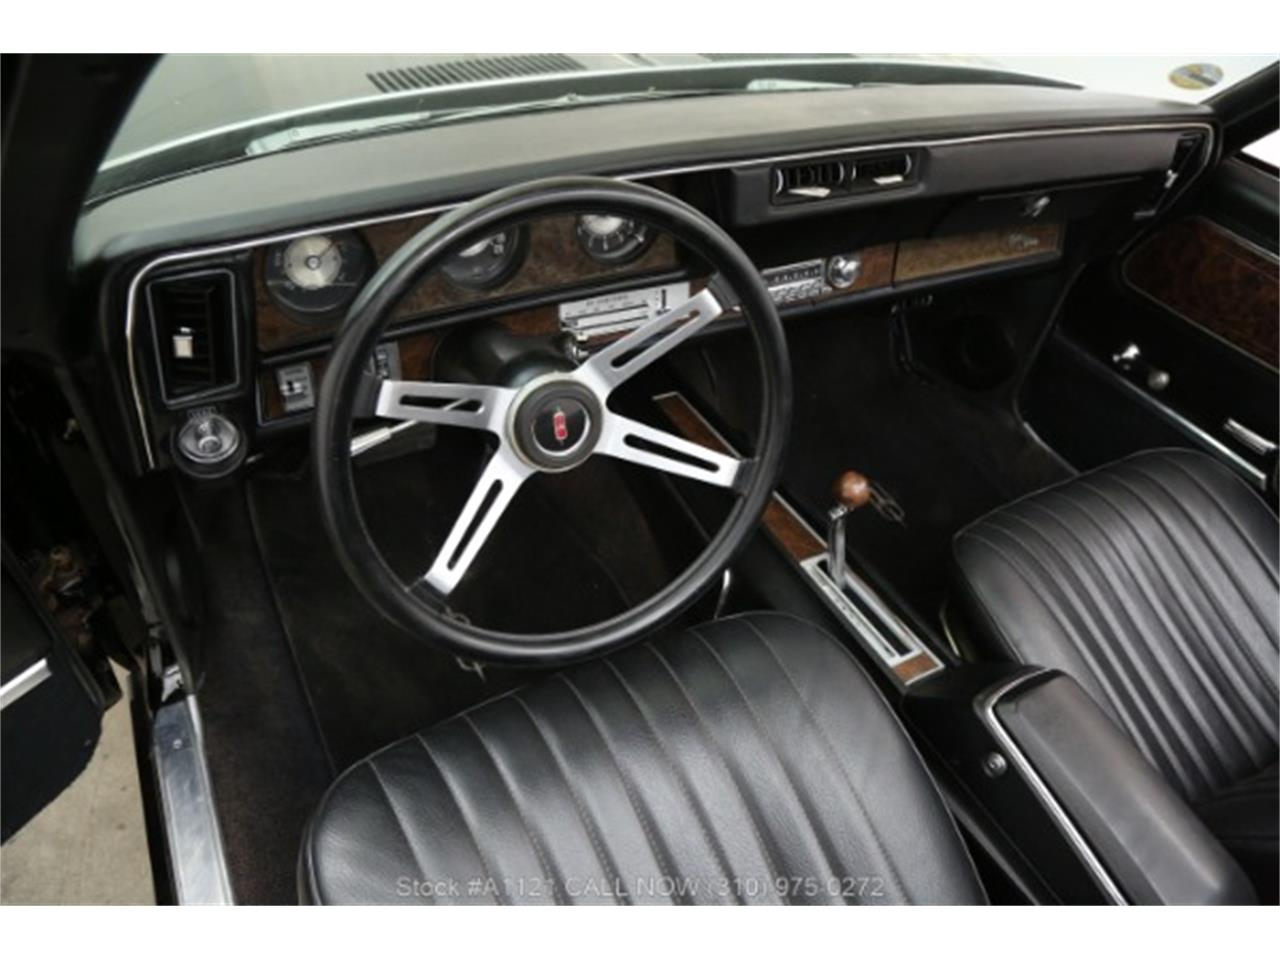 Large Picture of Classic '70 Oldsmobile Cutlass - $21,500.00 - MZ8B